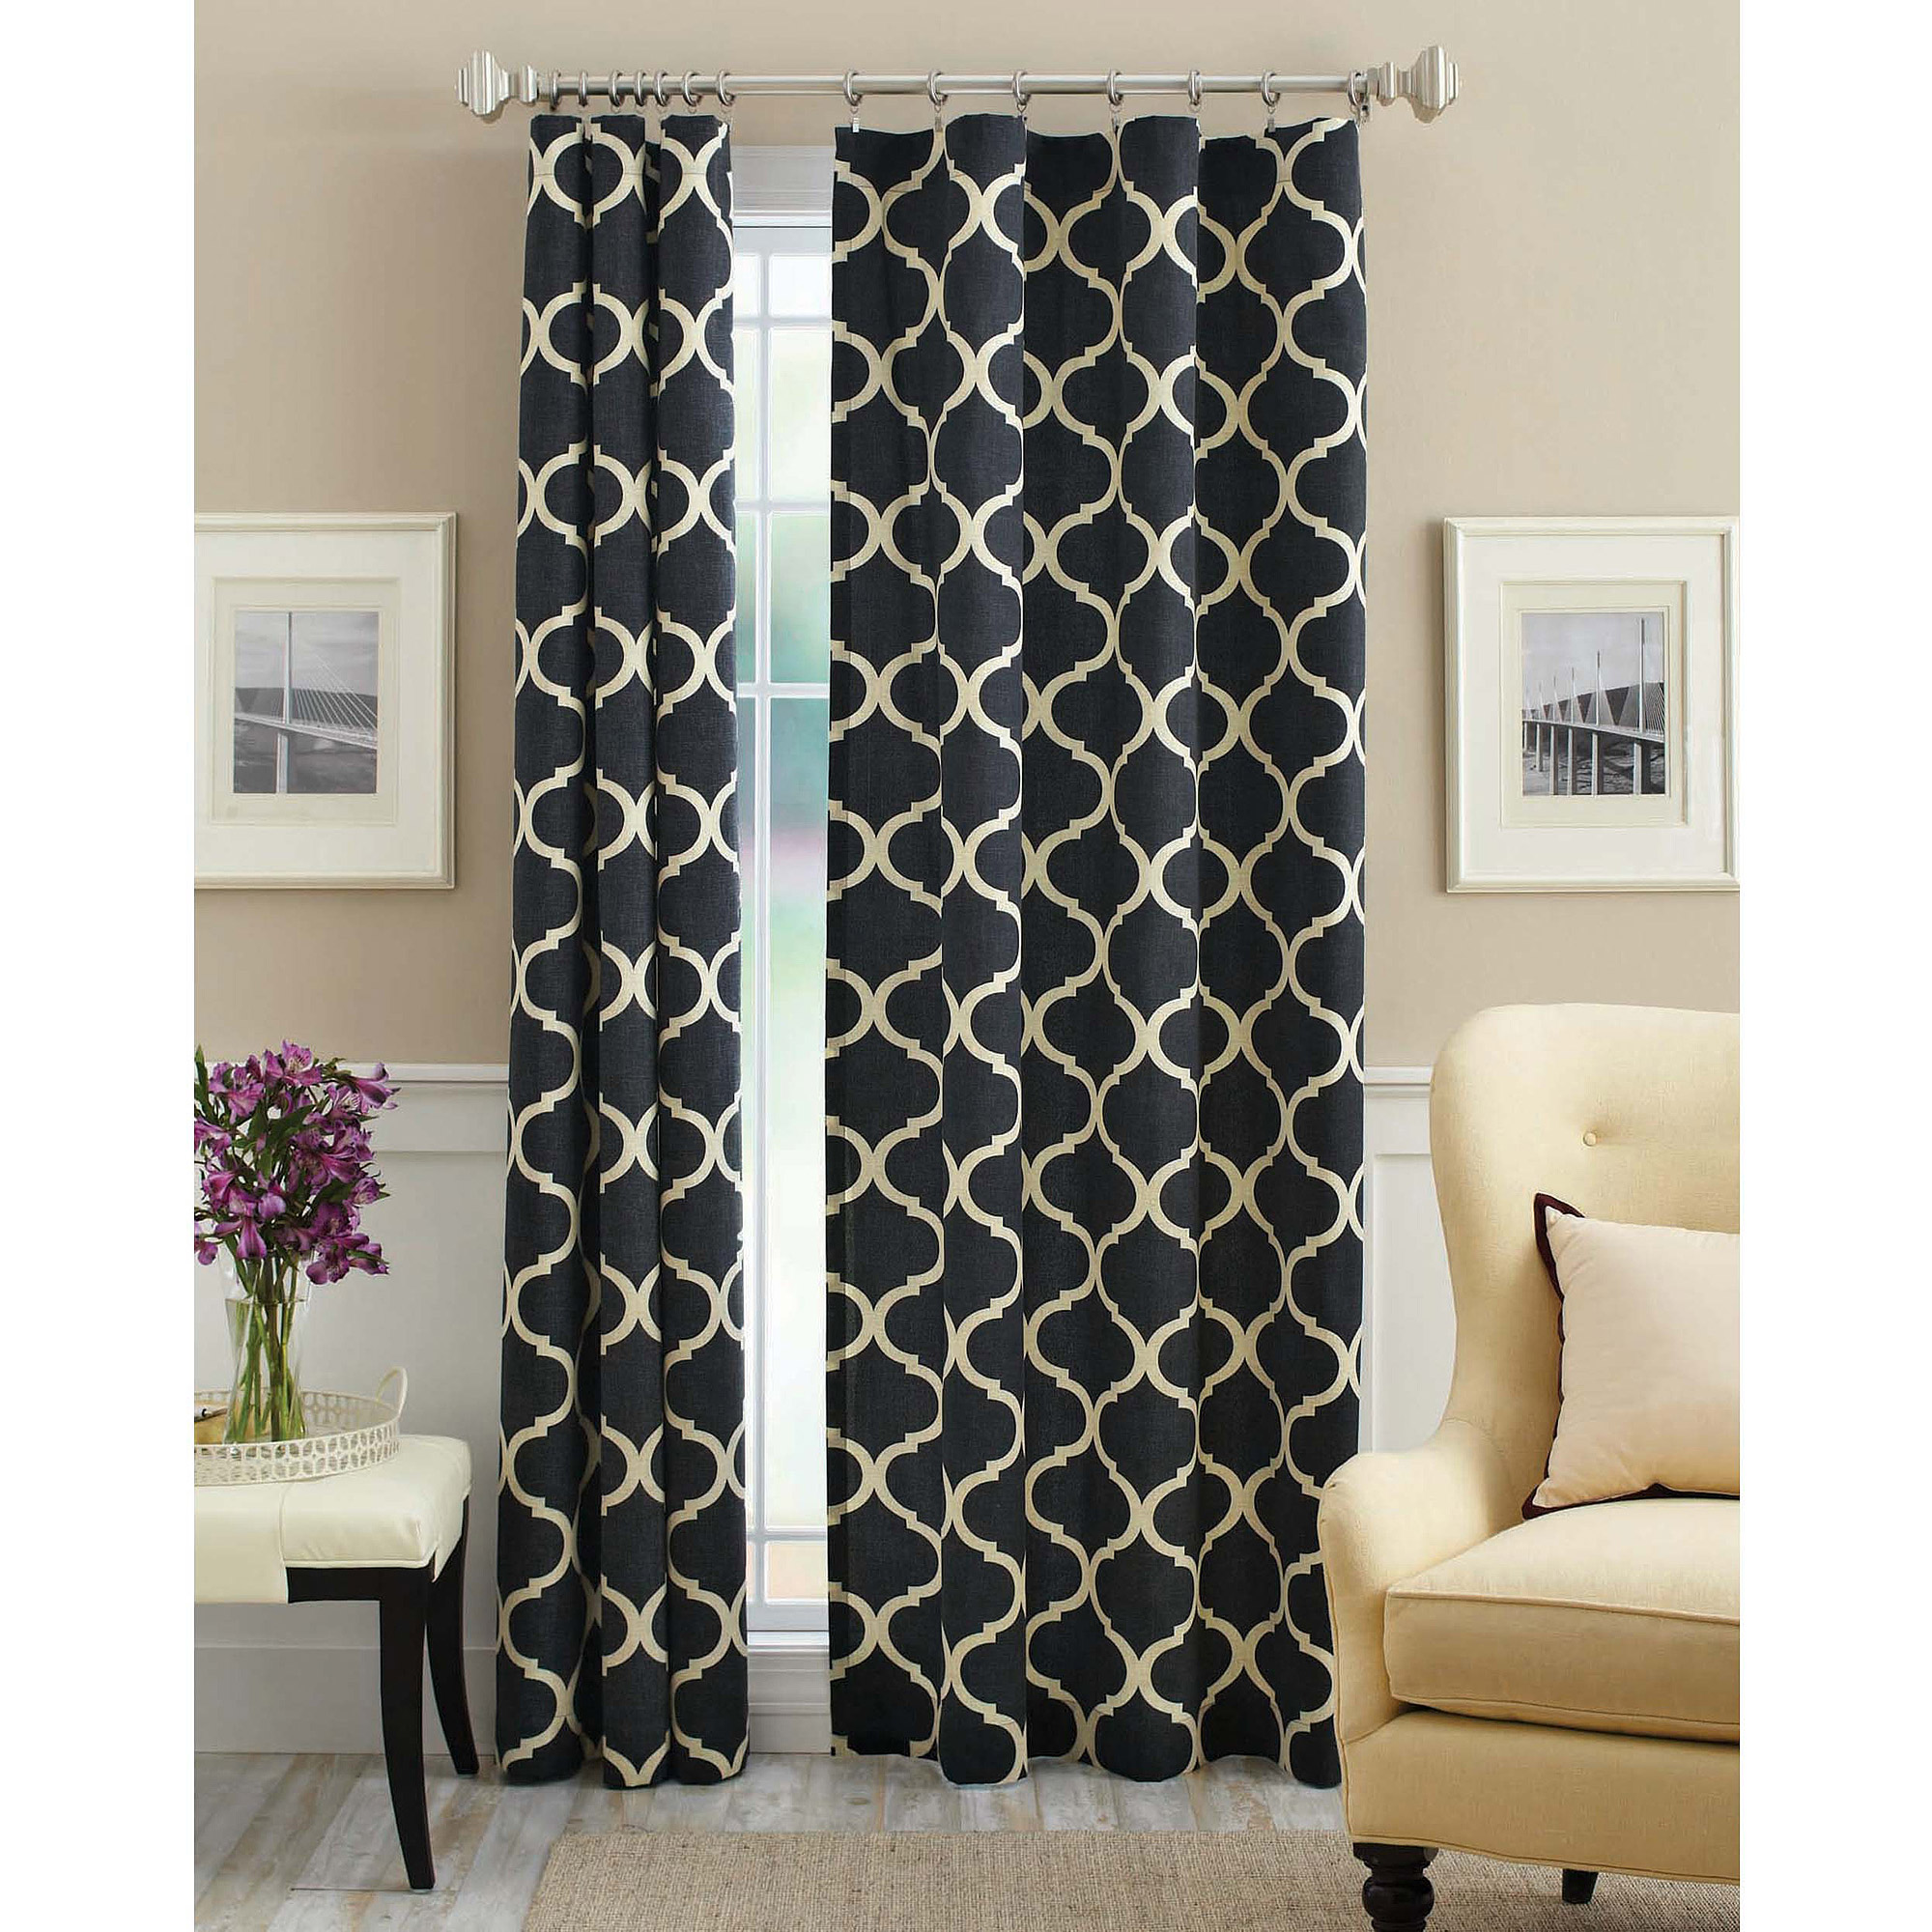 Blackout Curtains Thermal | White Darkening Curtains | Cheap Blackout Curtains